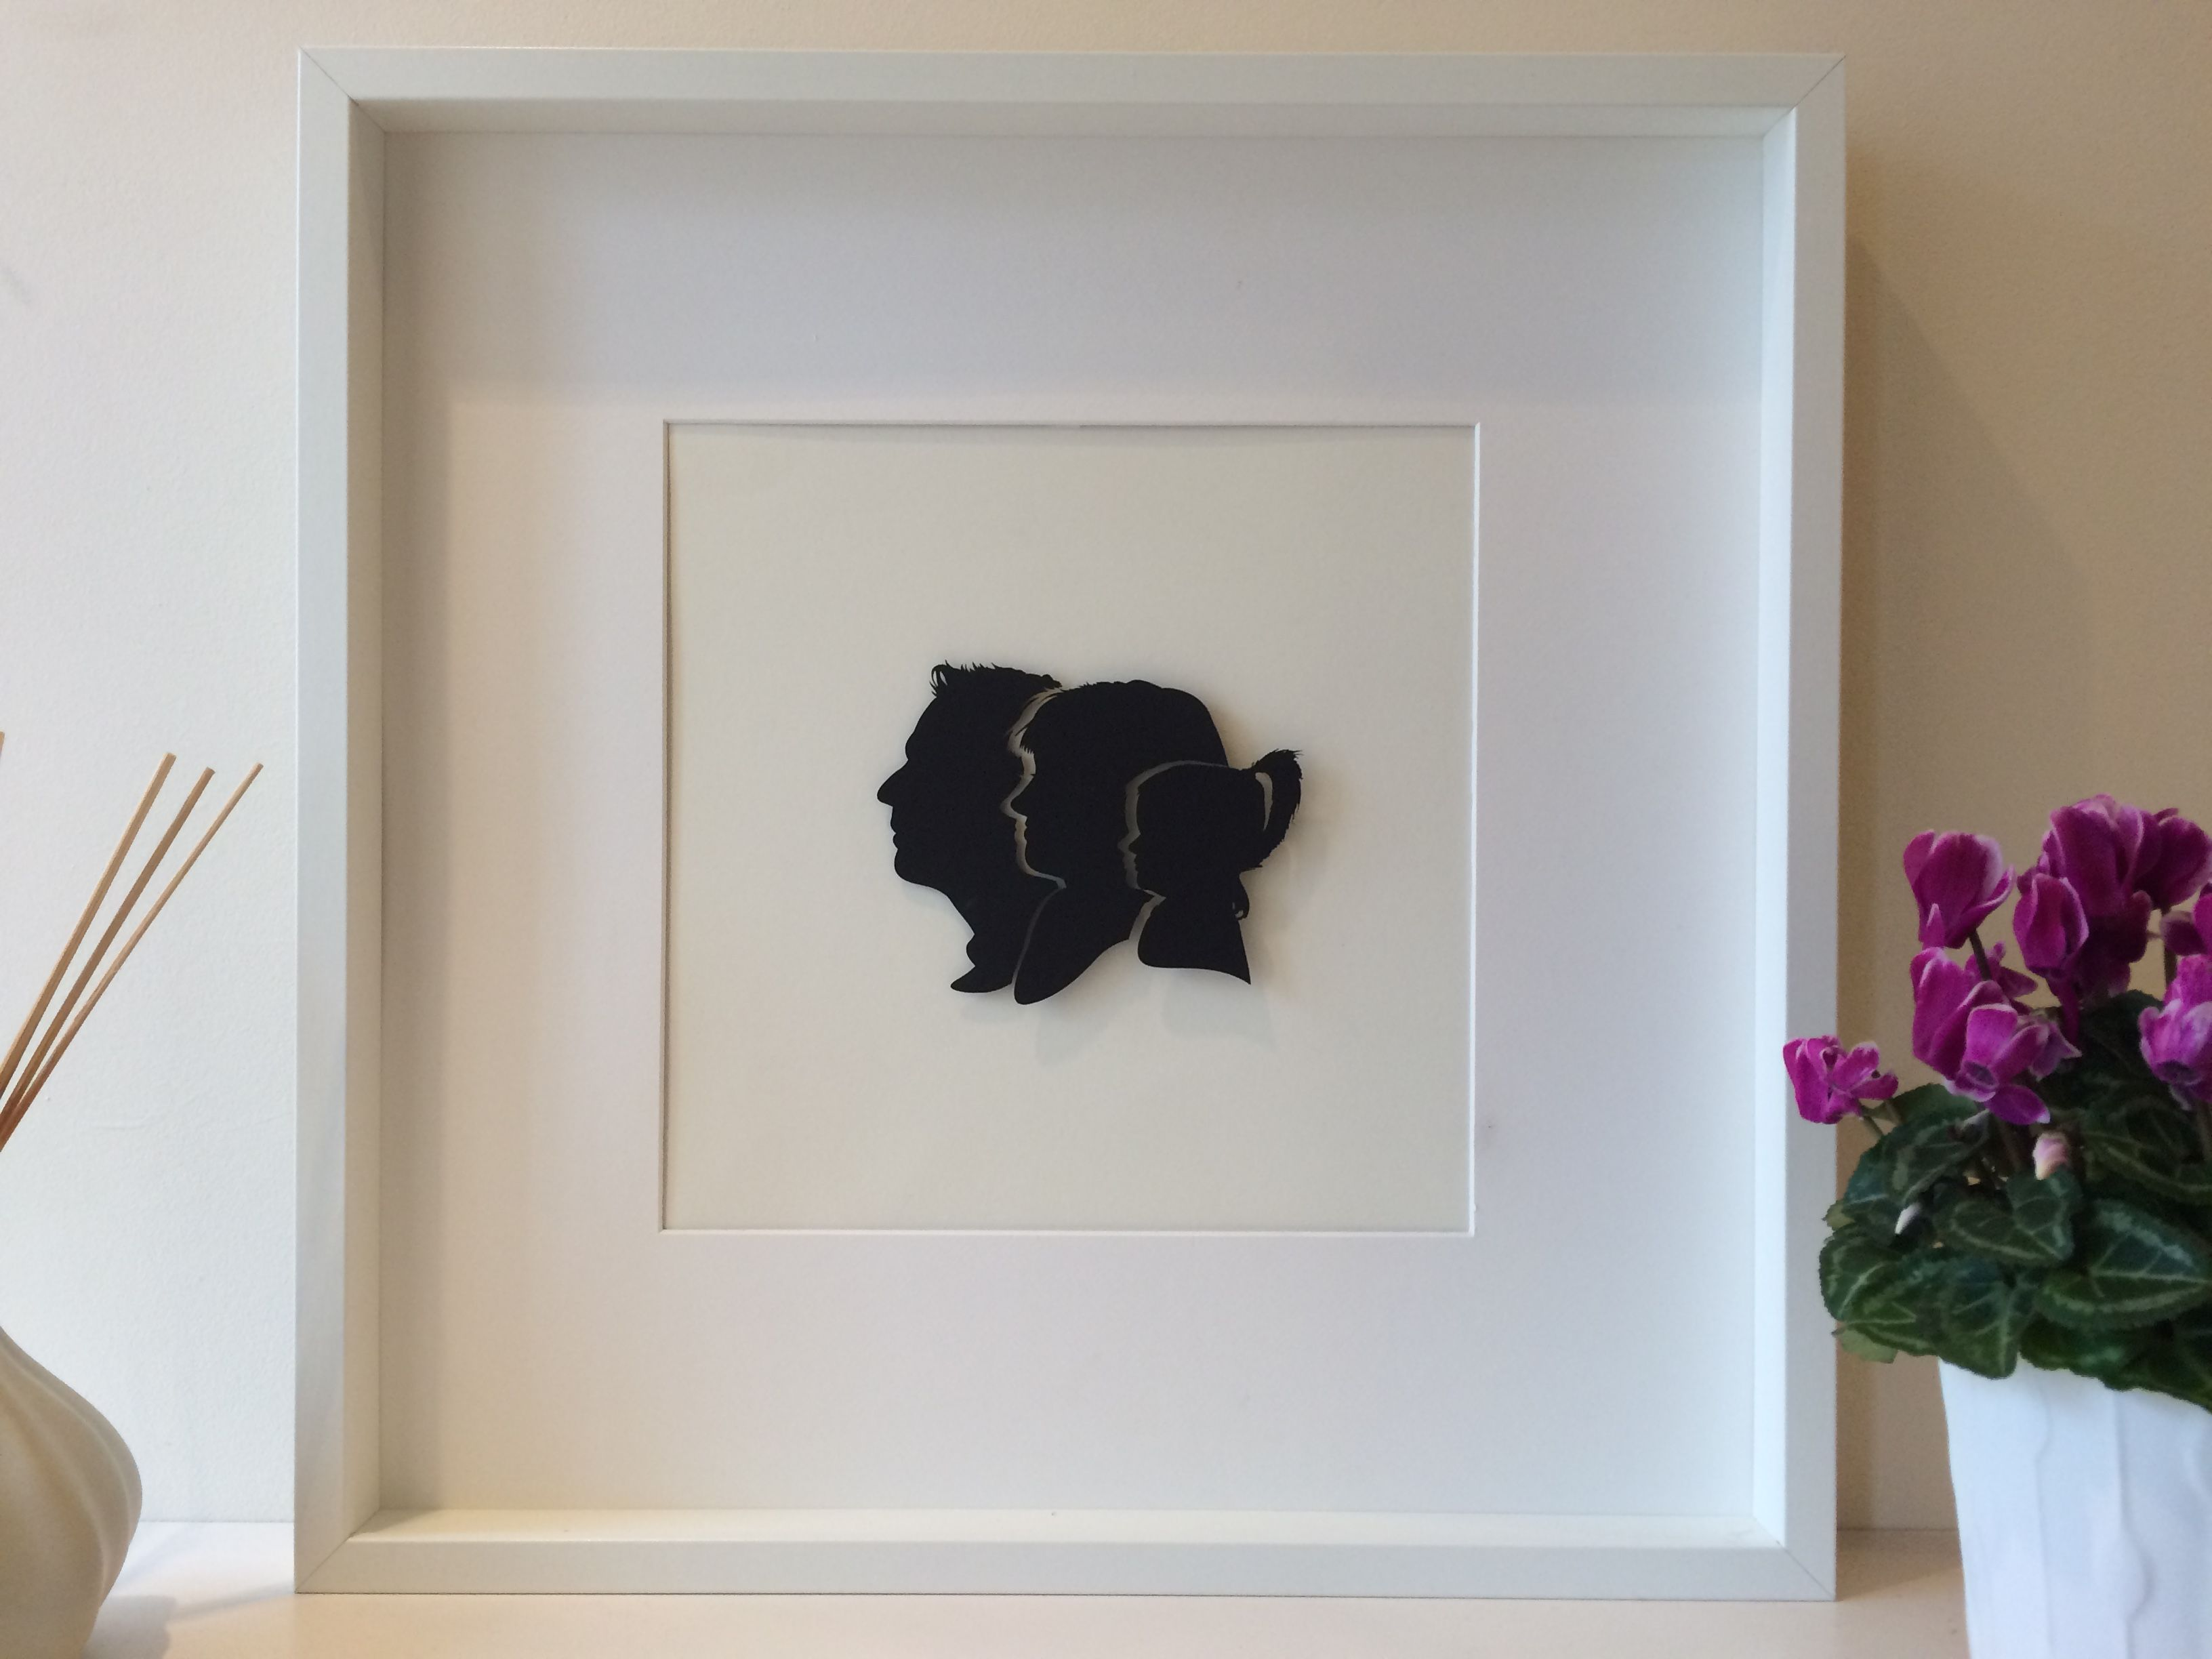 Silhouette Family Portrait with 3D Effect in a Large 50 x 50 cm ...